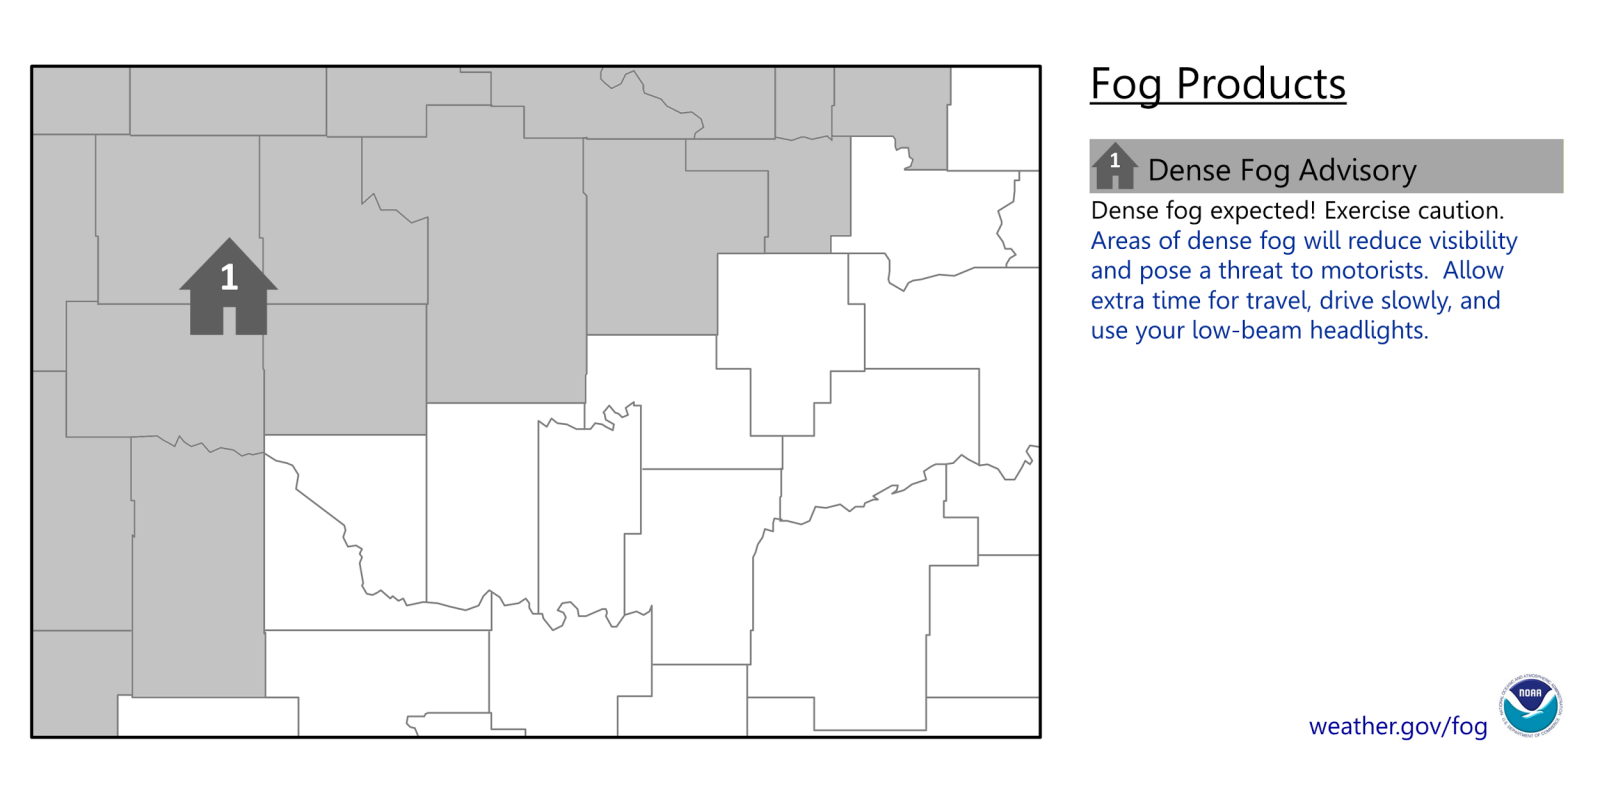 Dense Fog Advisory mean dense fog is expected! Exercise caution. Areas of dense fog will reduce visibility and pose a threat to motorists. Allow extra time for travel, drive slowly, and use your low-beam lights.